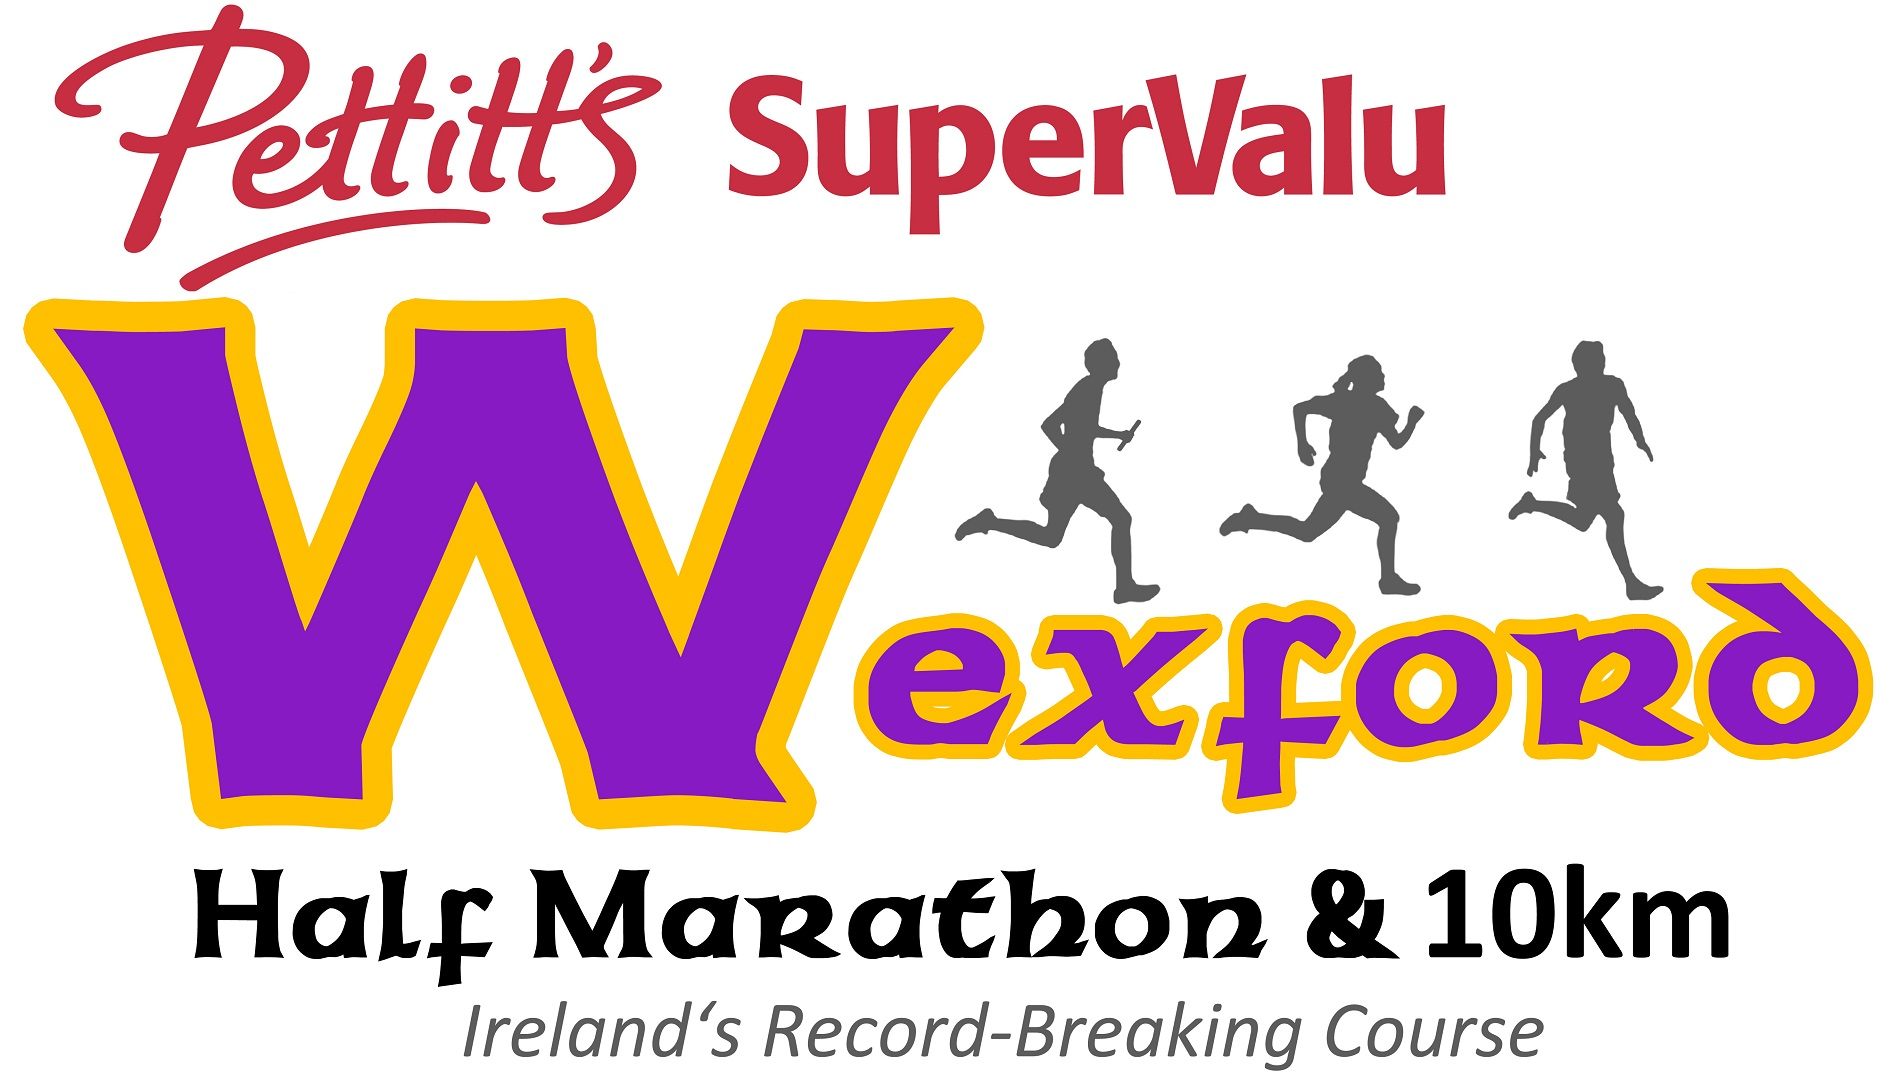 Pettitt's Supervalu Wexford Half marathon and 10km